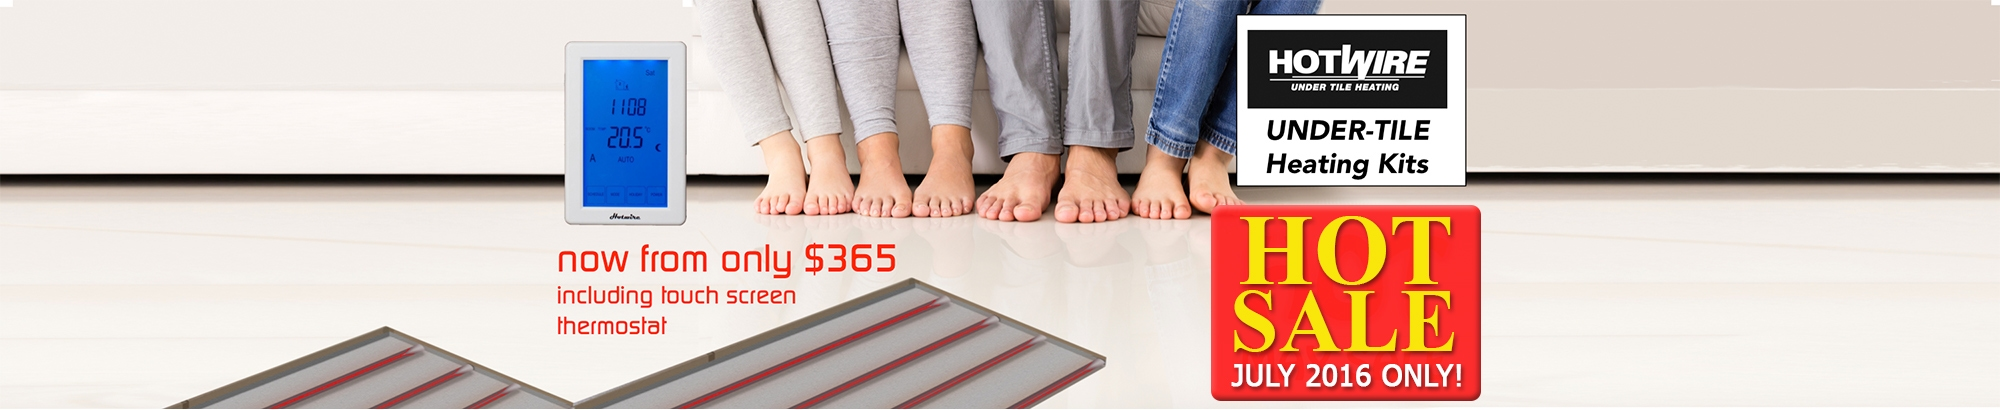 15% OFF Hotwire Under-Tile Heating Kit